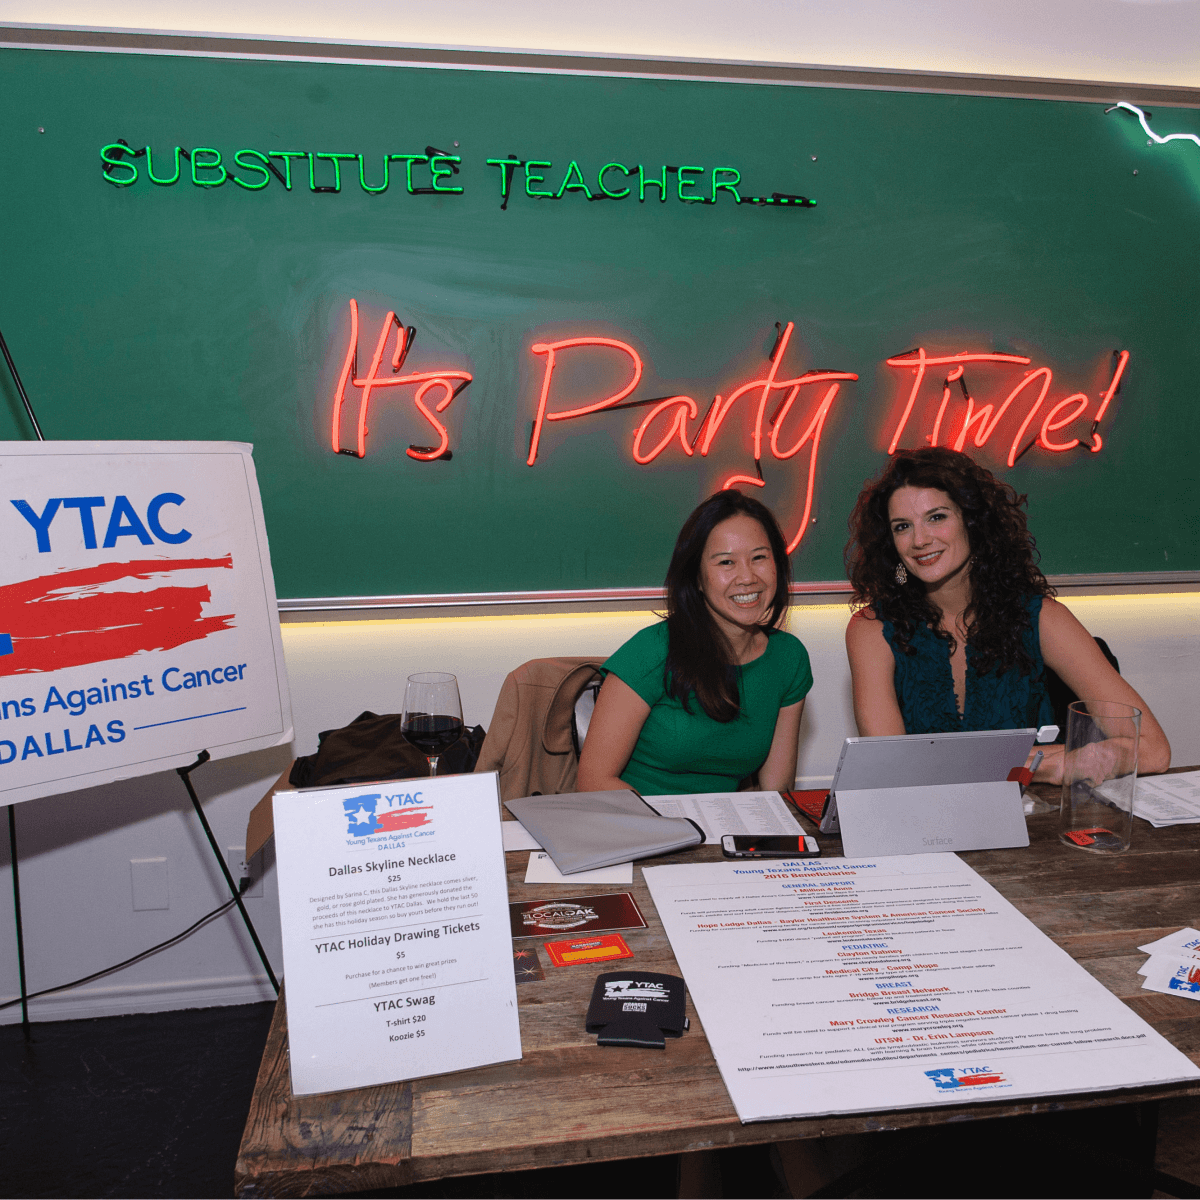 YTAC Dallas holiday party